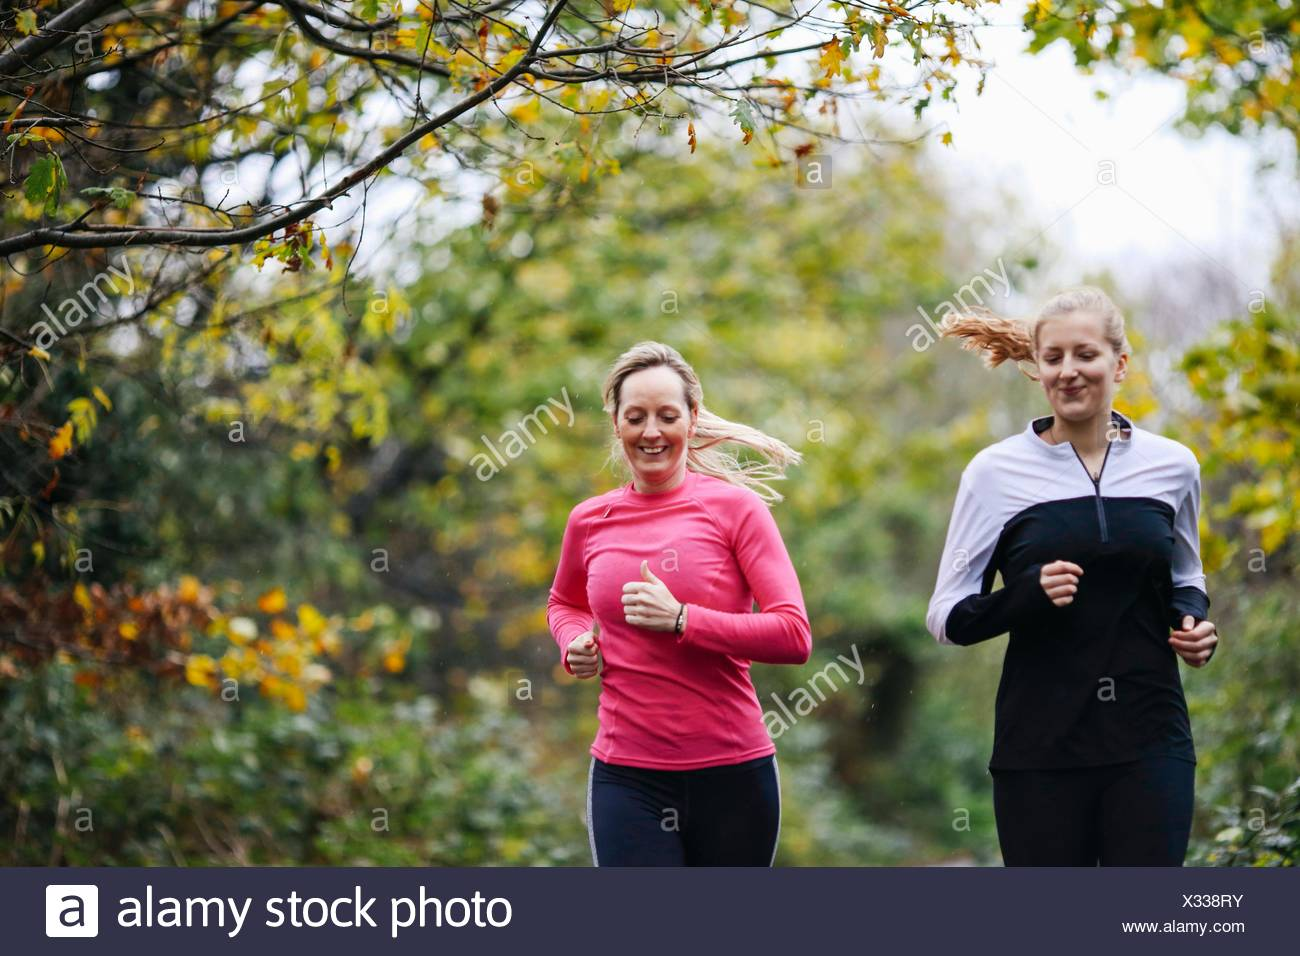 Teenage girl and woman running in park - Stock Image